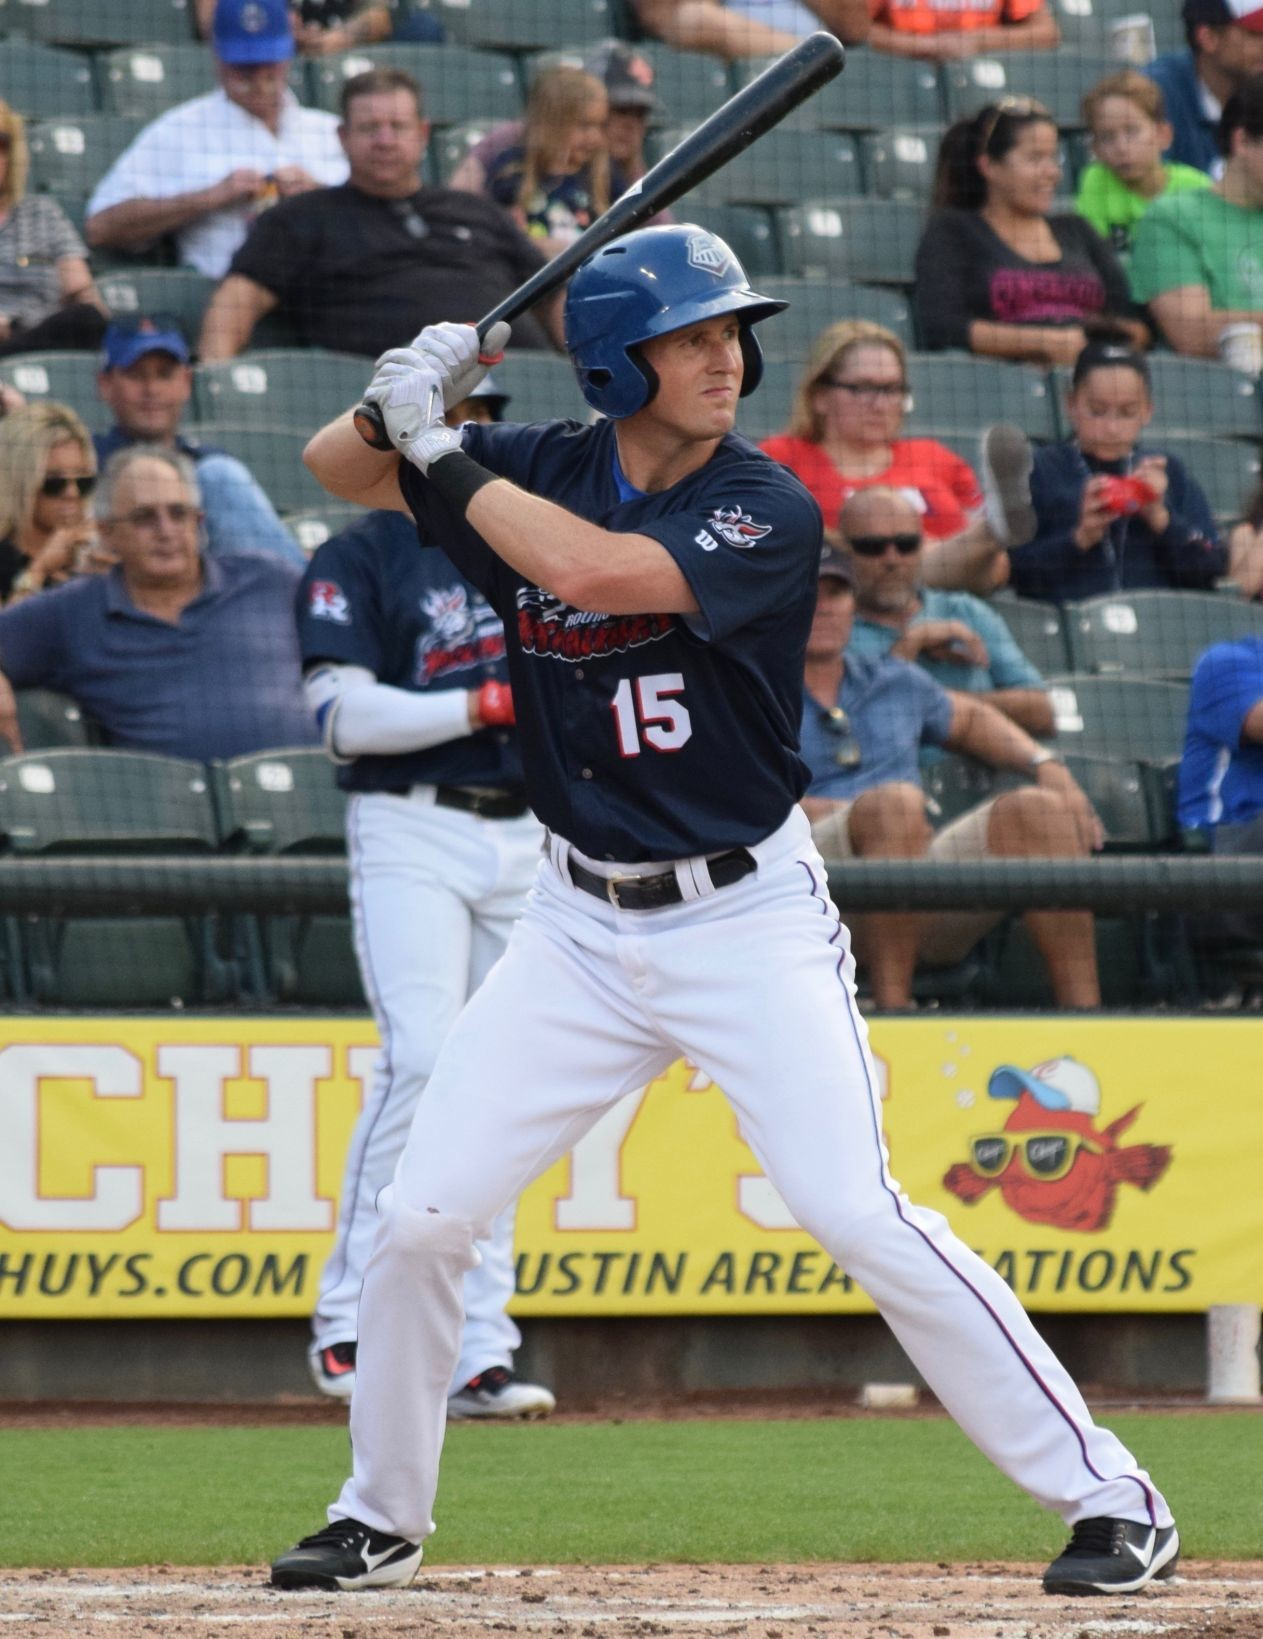 Drew Stubbs doesn't have the most home runs or RBIs on the Round Rock Express, but he is second in OPS, a statistic that measures a player's overall offensive production.